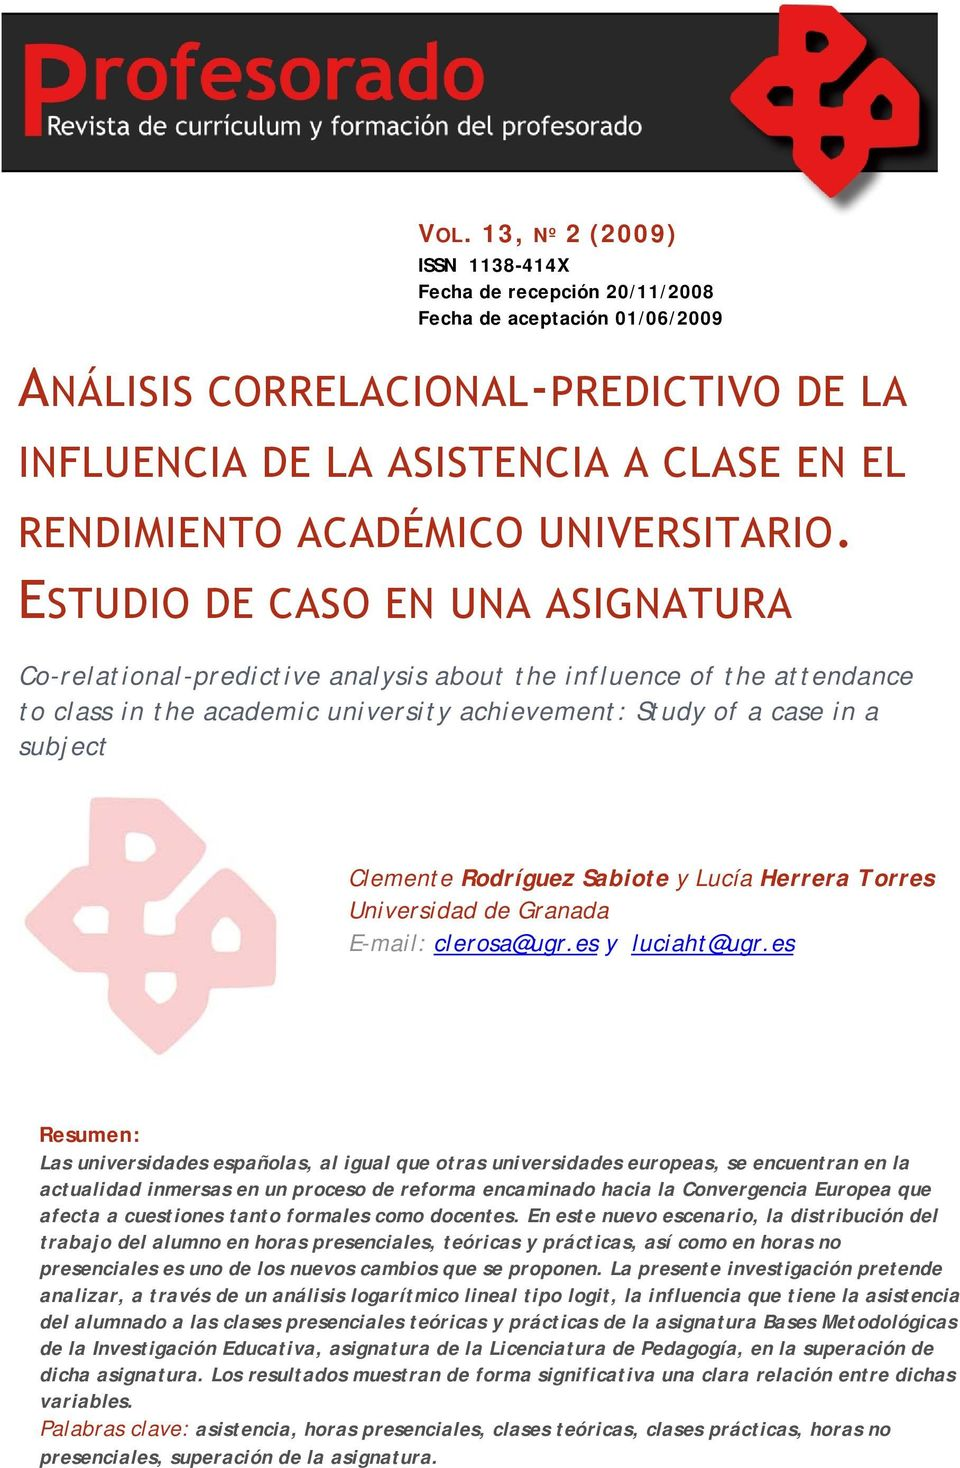 ESTUDIO DE CASO EN UNA ASIGNATURA Co-relational-predictive analysis about the influence of the attendance to class in the academic university achievement: Study of a case in a subject Clemente